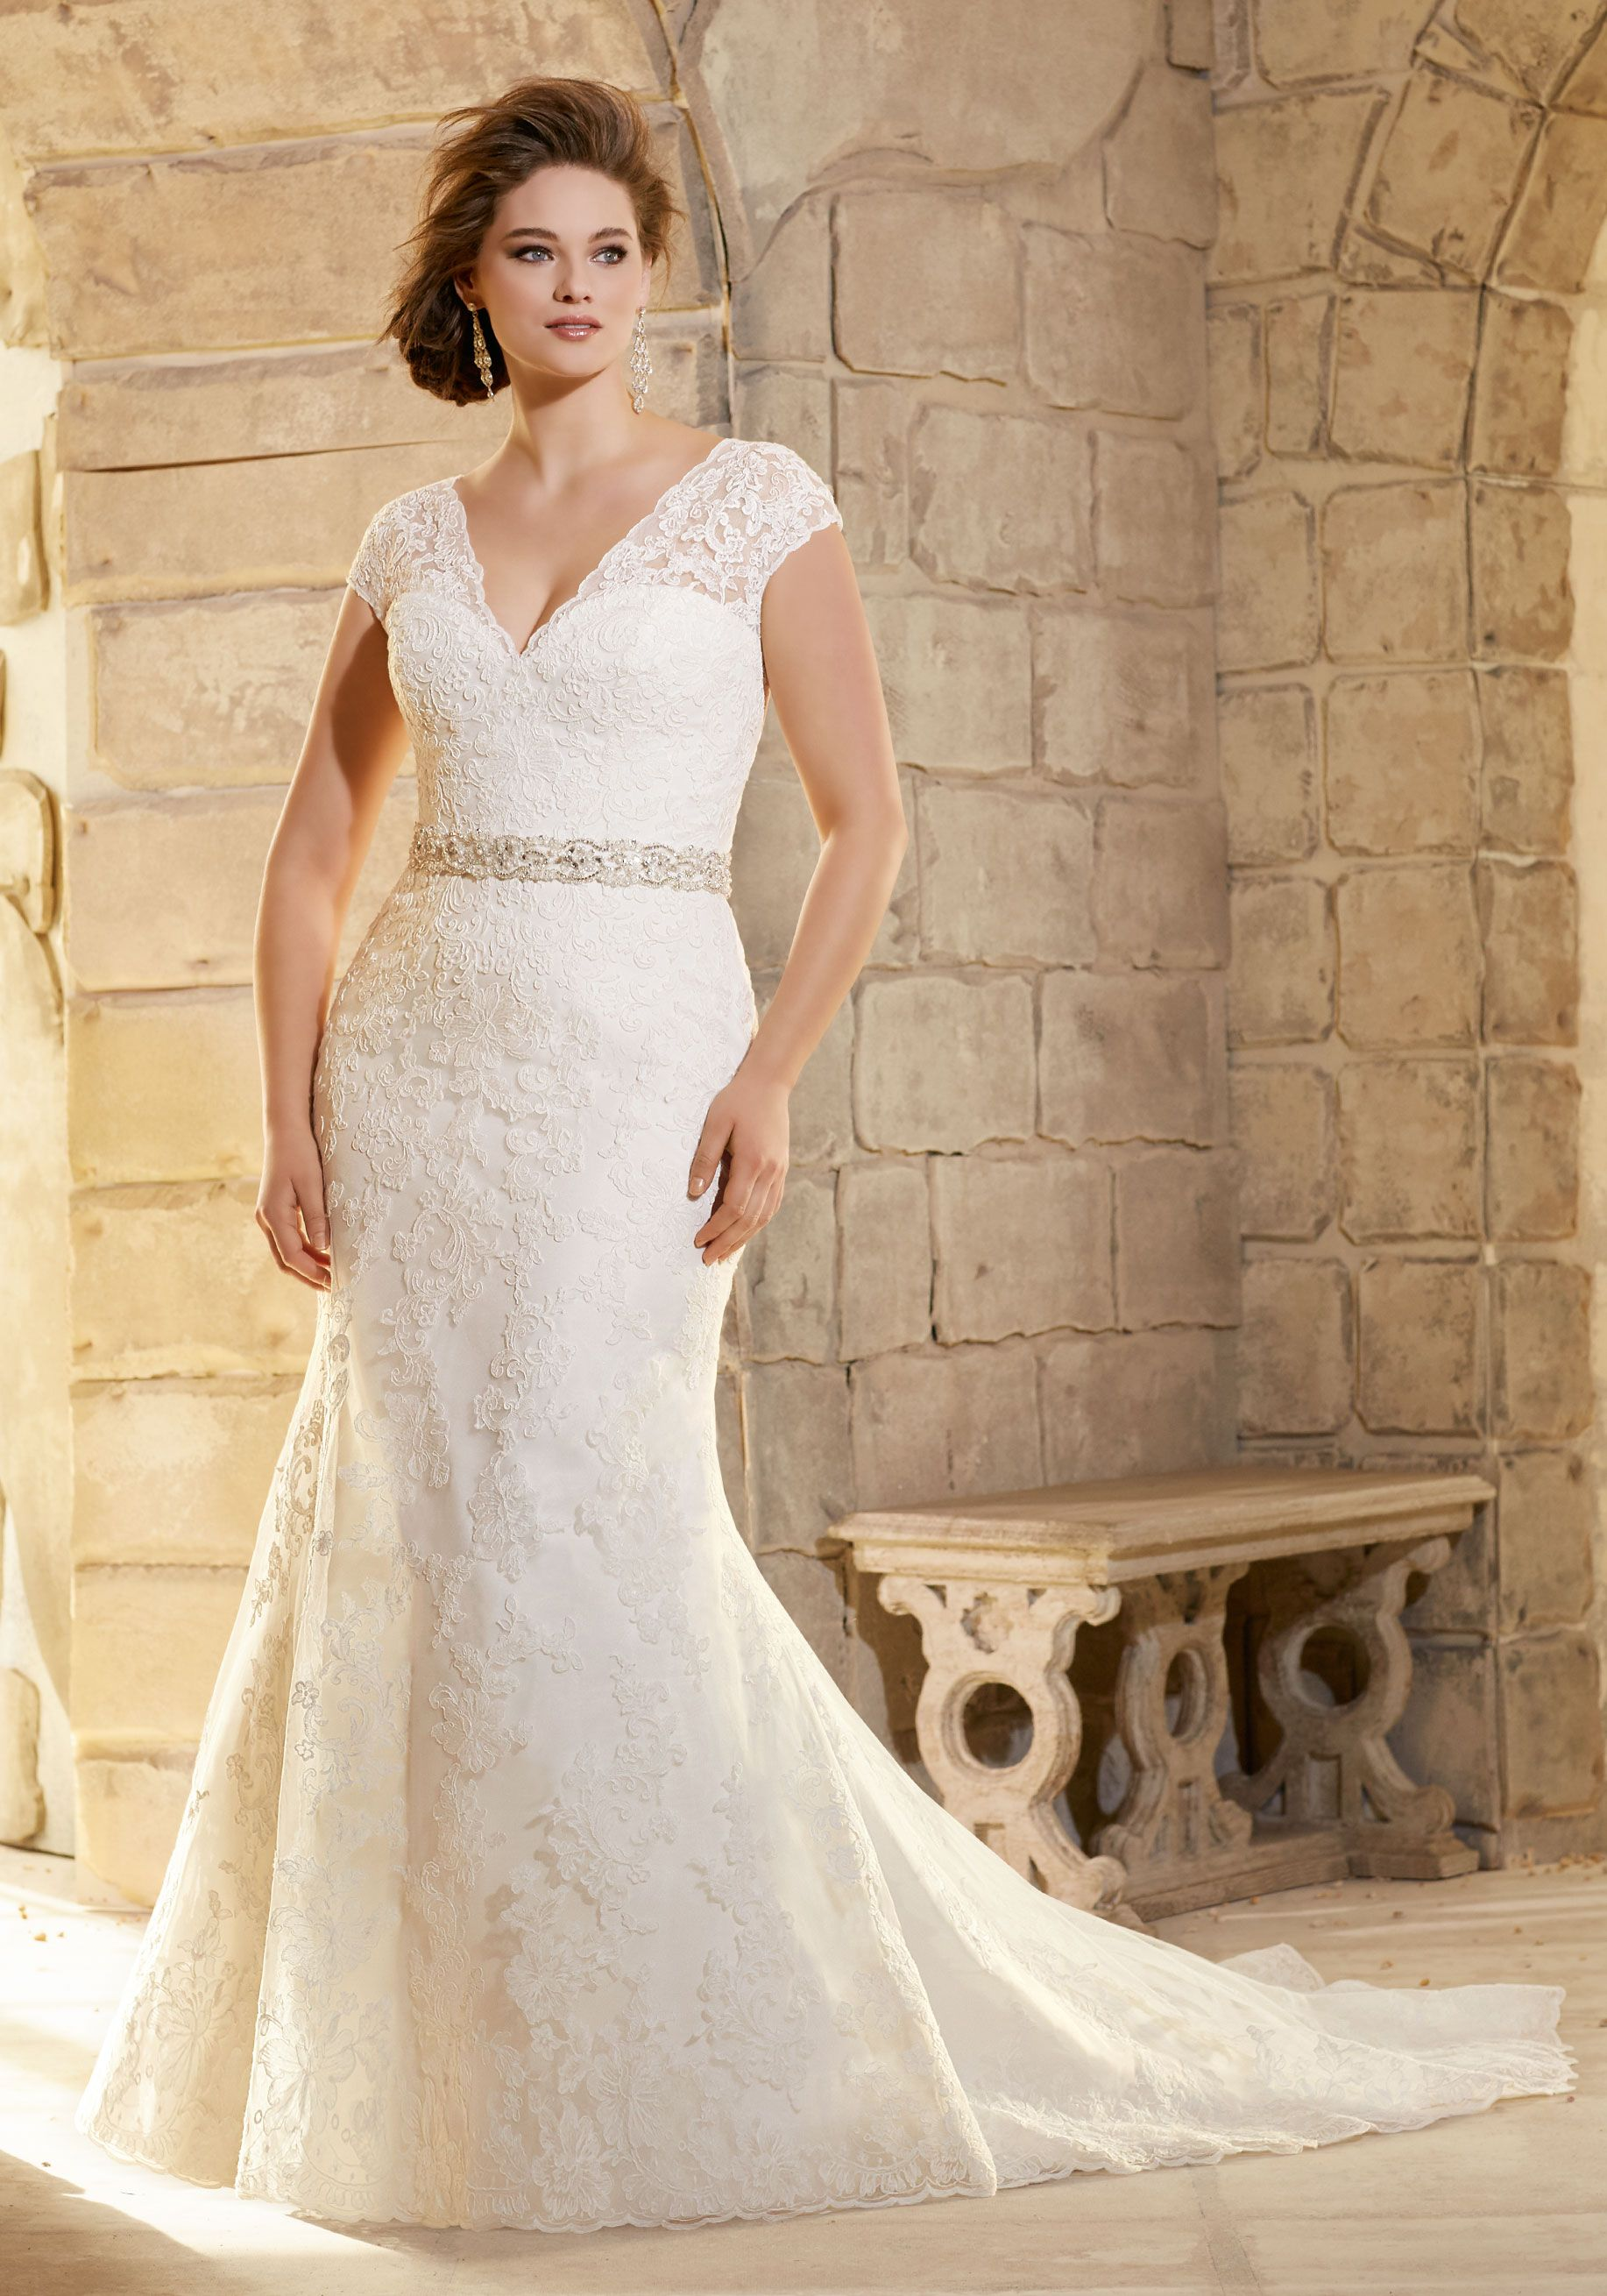 Silver wedding dresses plus size  Embroidered Appliques on Net with Wide Hemline Border Plus Size